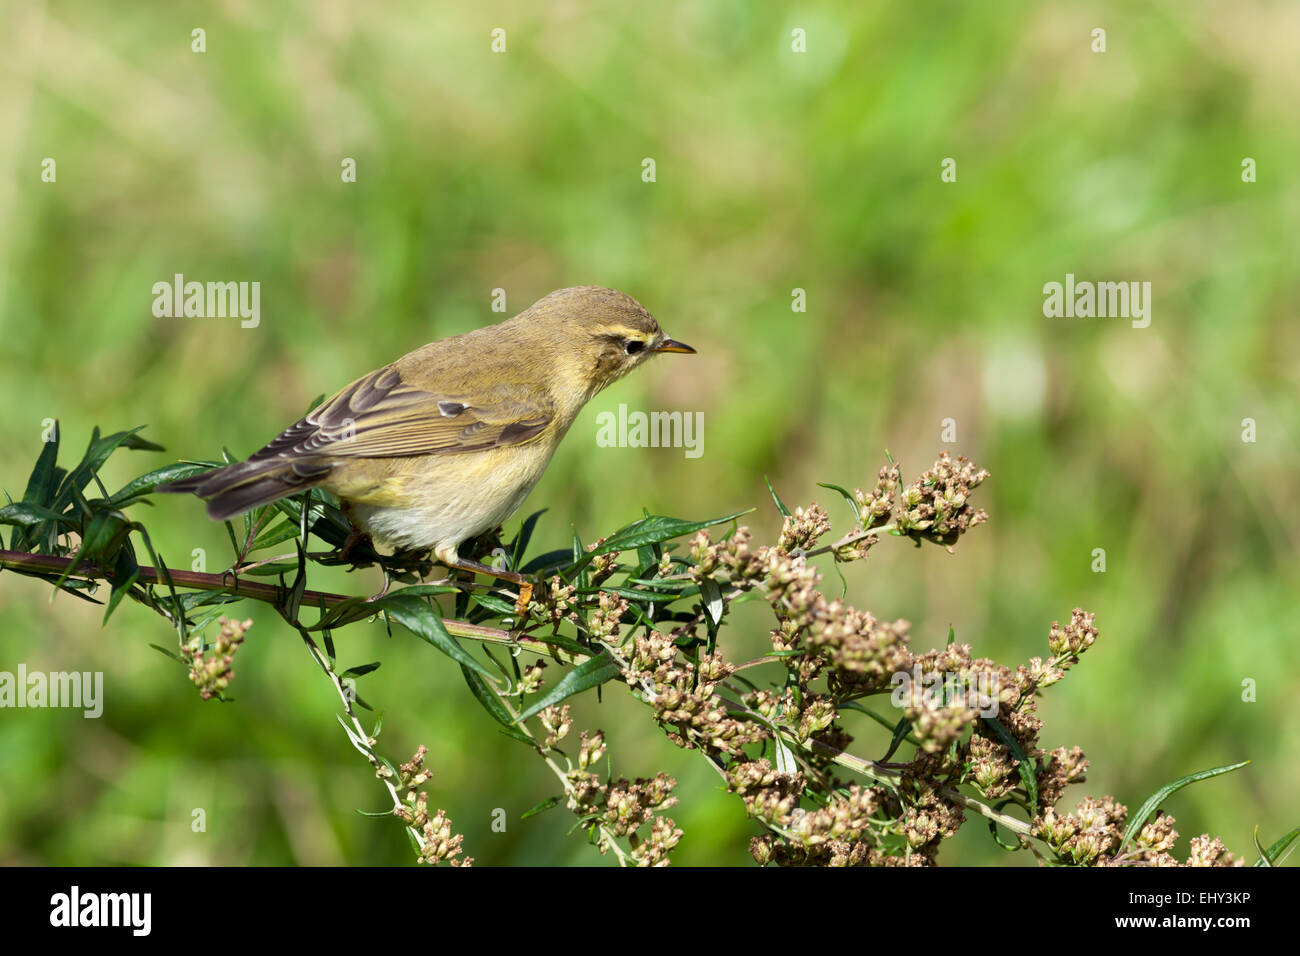 Leaf warbler (Willow Warbler?) (Phylloscopus sp). Timirjazevsky park, Moscow. Russia. Stock Photo